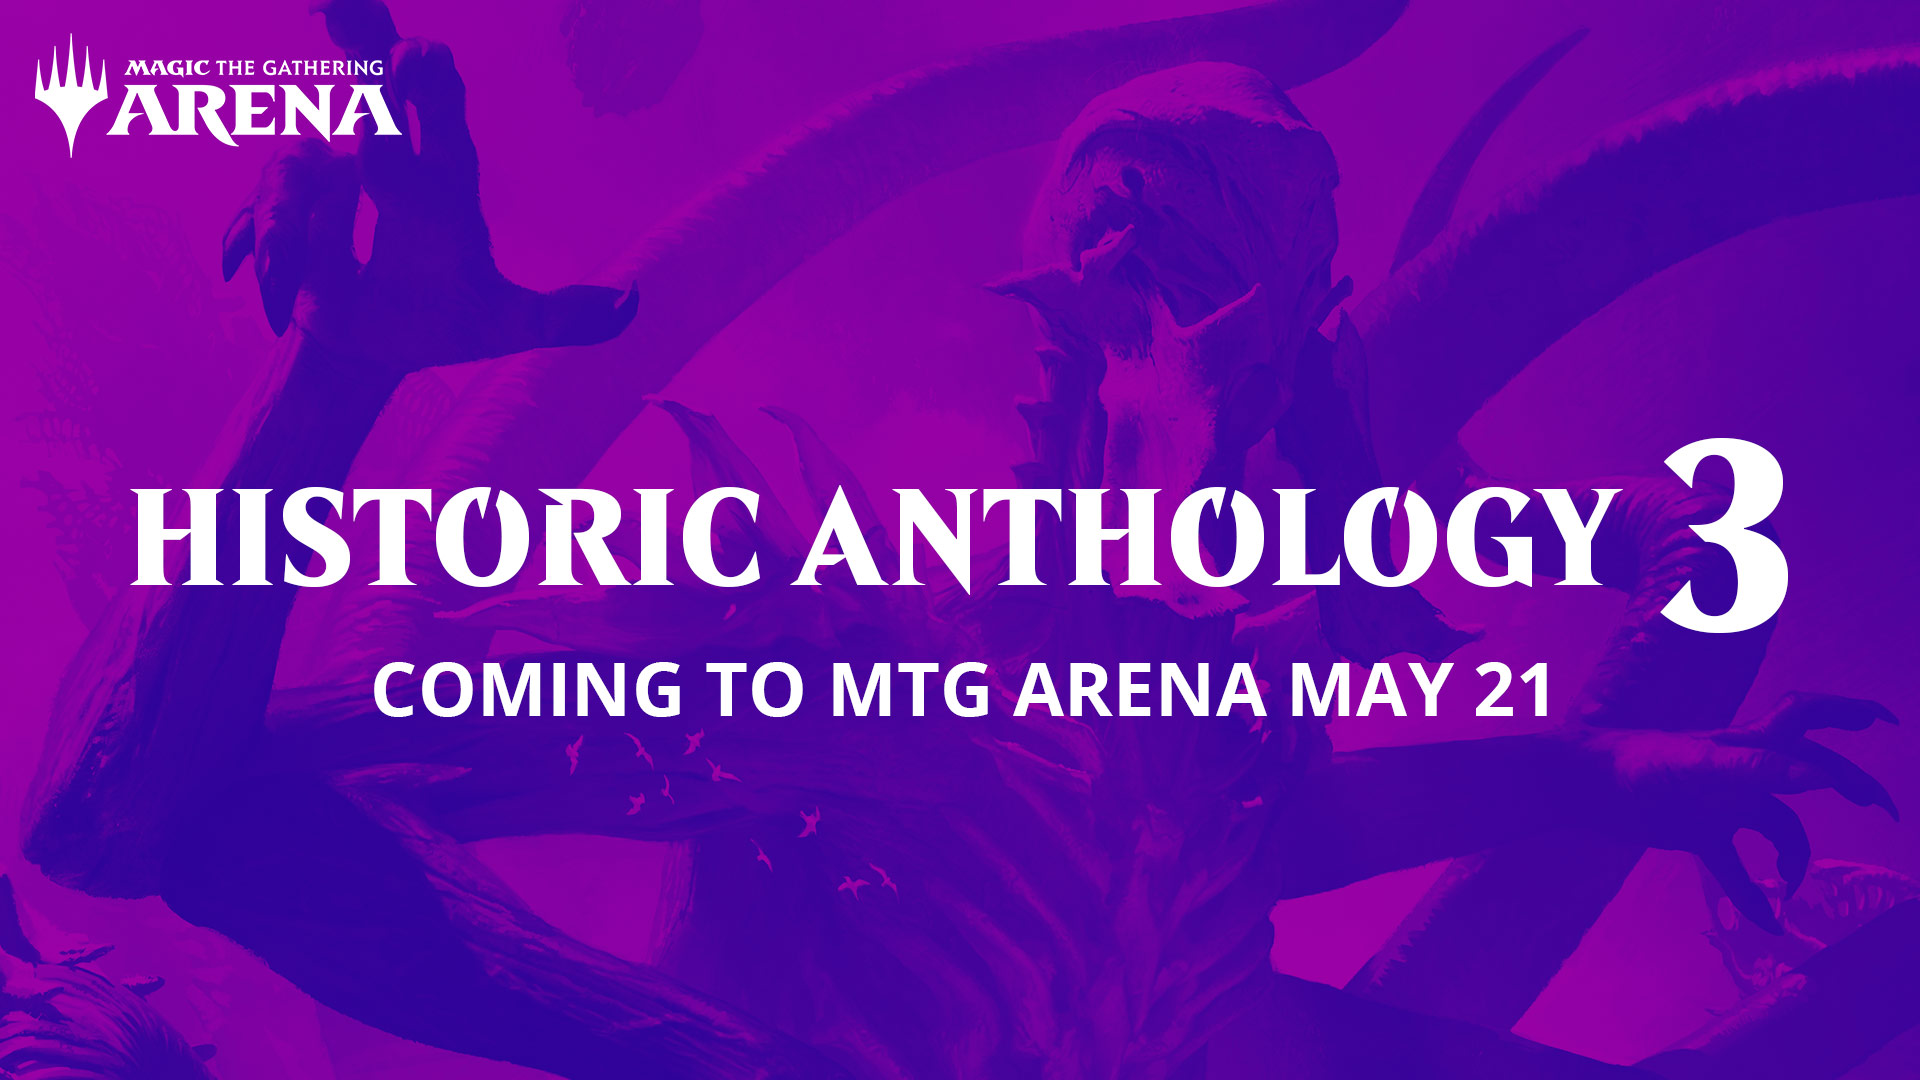 Historic Anthology 3 Coming May 21